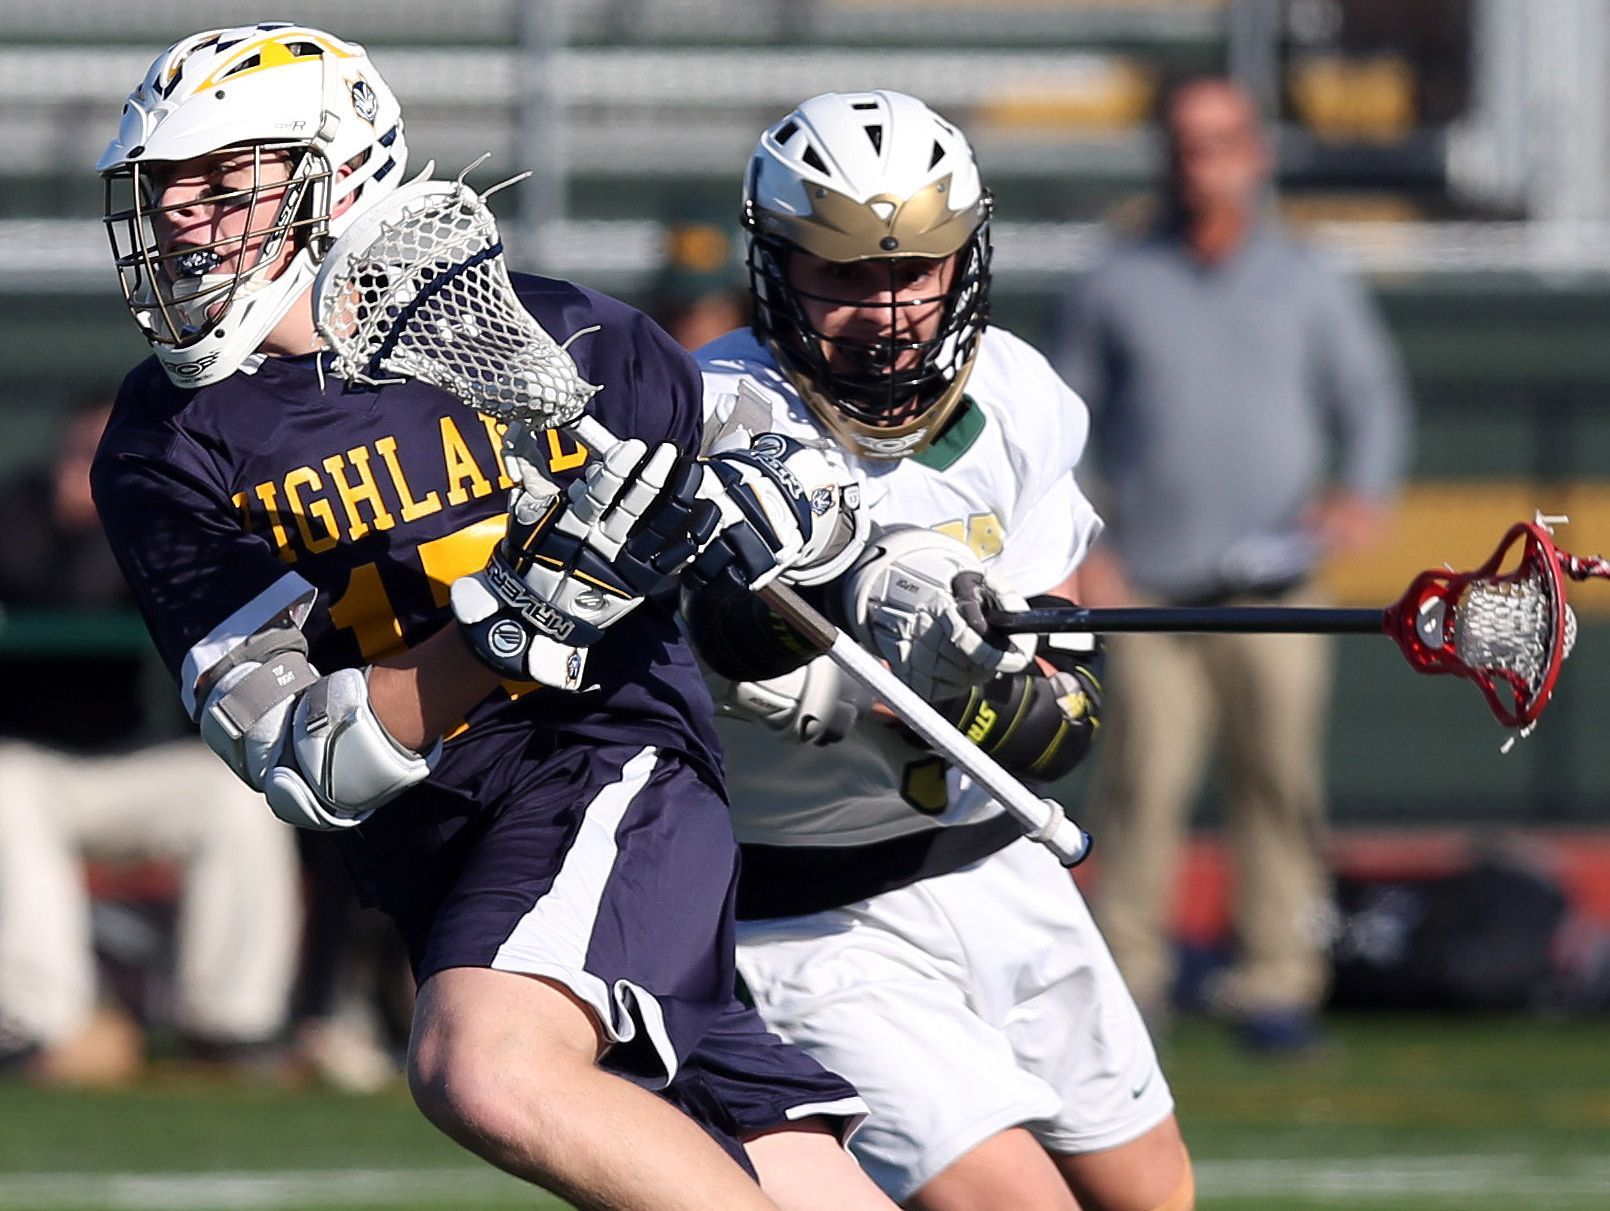 Highland's Jesse Weaver (17) turns the corner on FDR's Kyle Mackin (9) during boys lacrosse action at Franklin D. Roosevelt High School in Staatsburgh March 18, 2017.